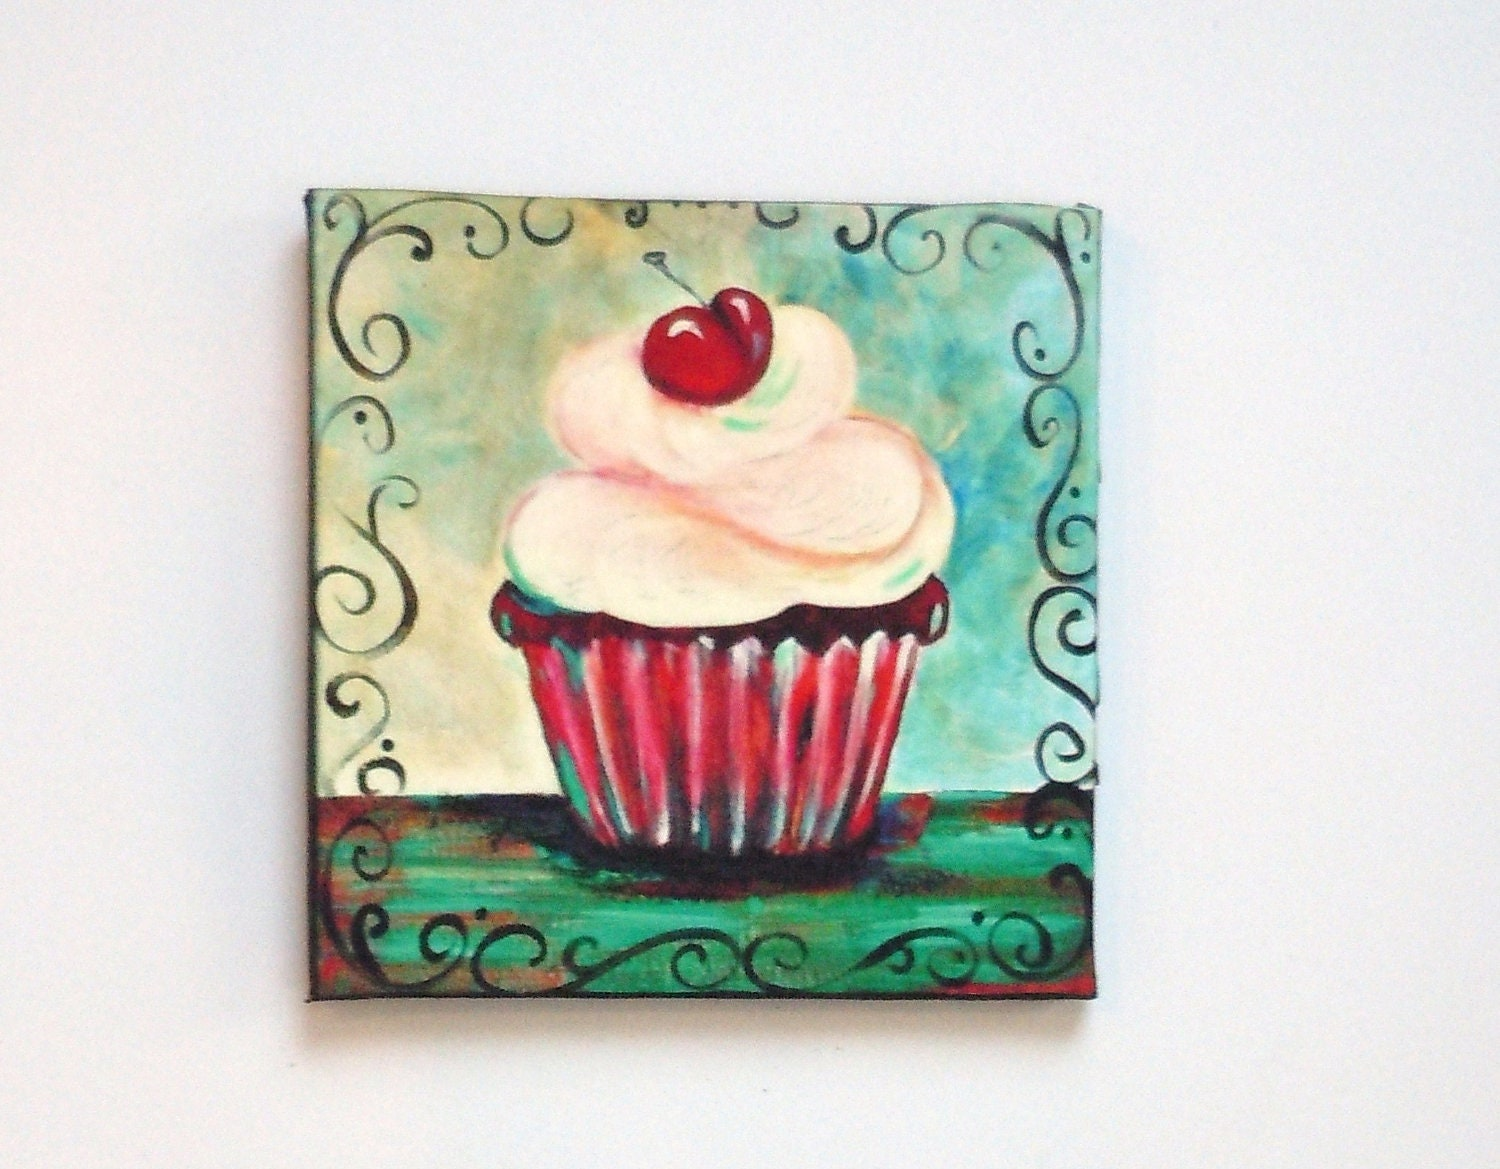 Http Hdimagegallery Net Cupcake Kitchen Decor